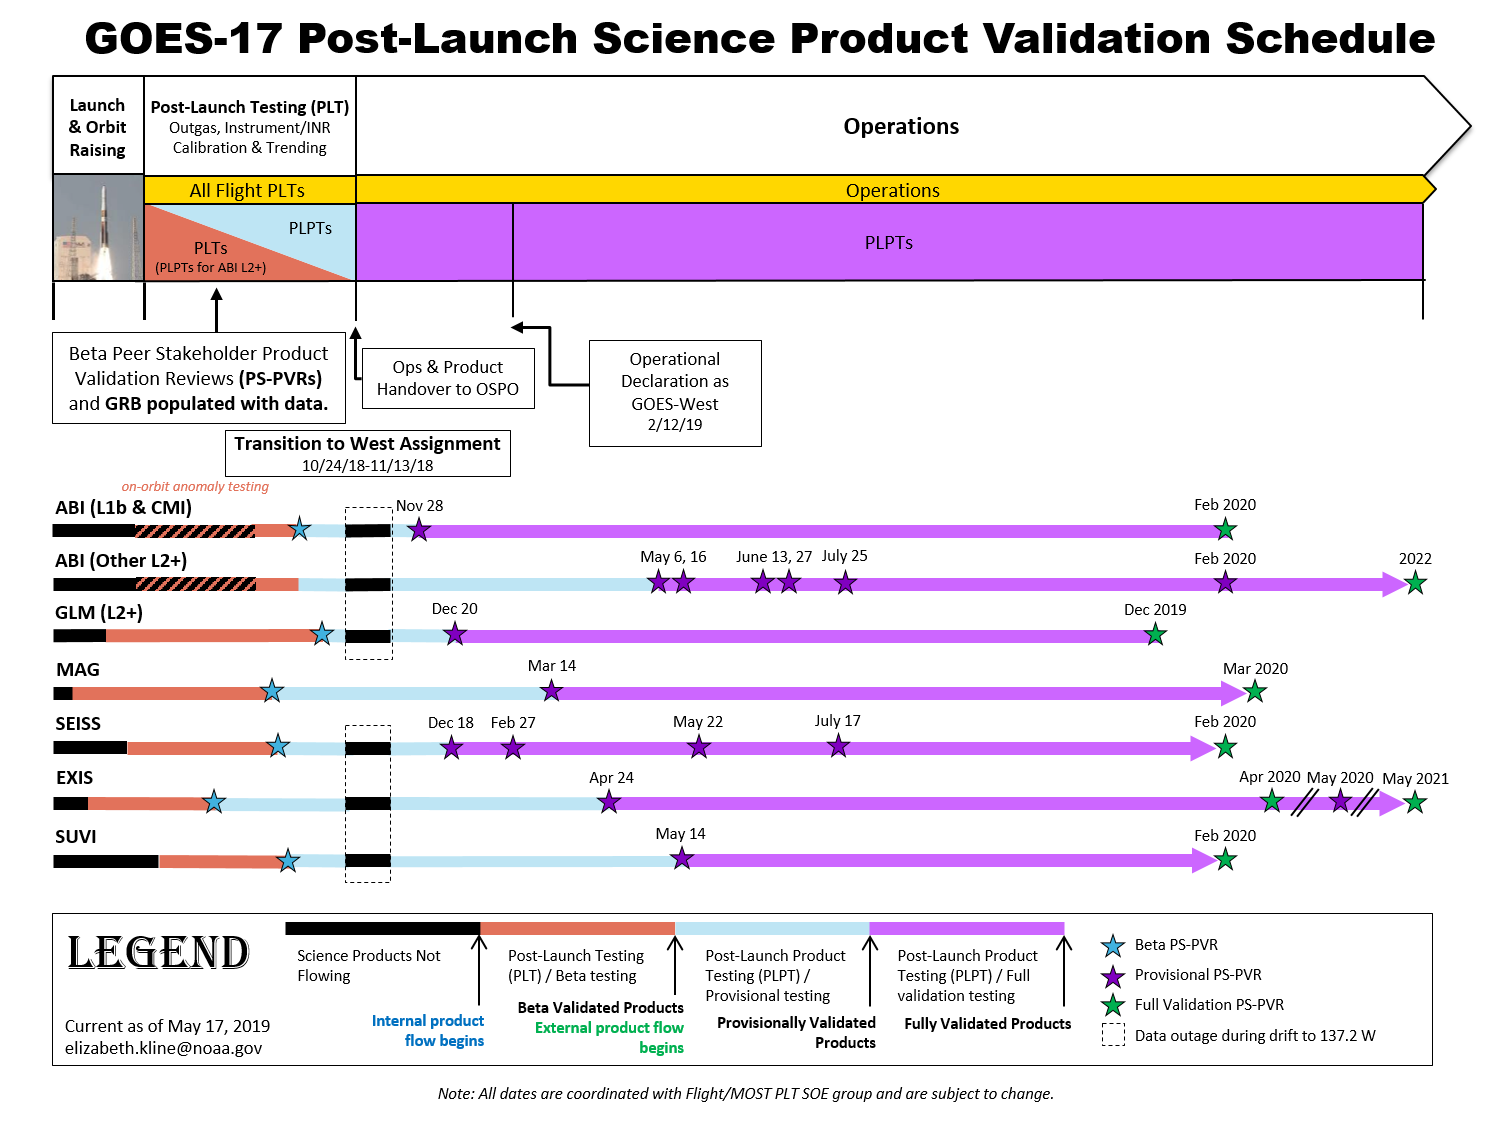 GOES-17 science product validation schedule as of May 17, 2019.